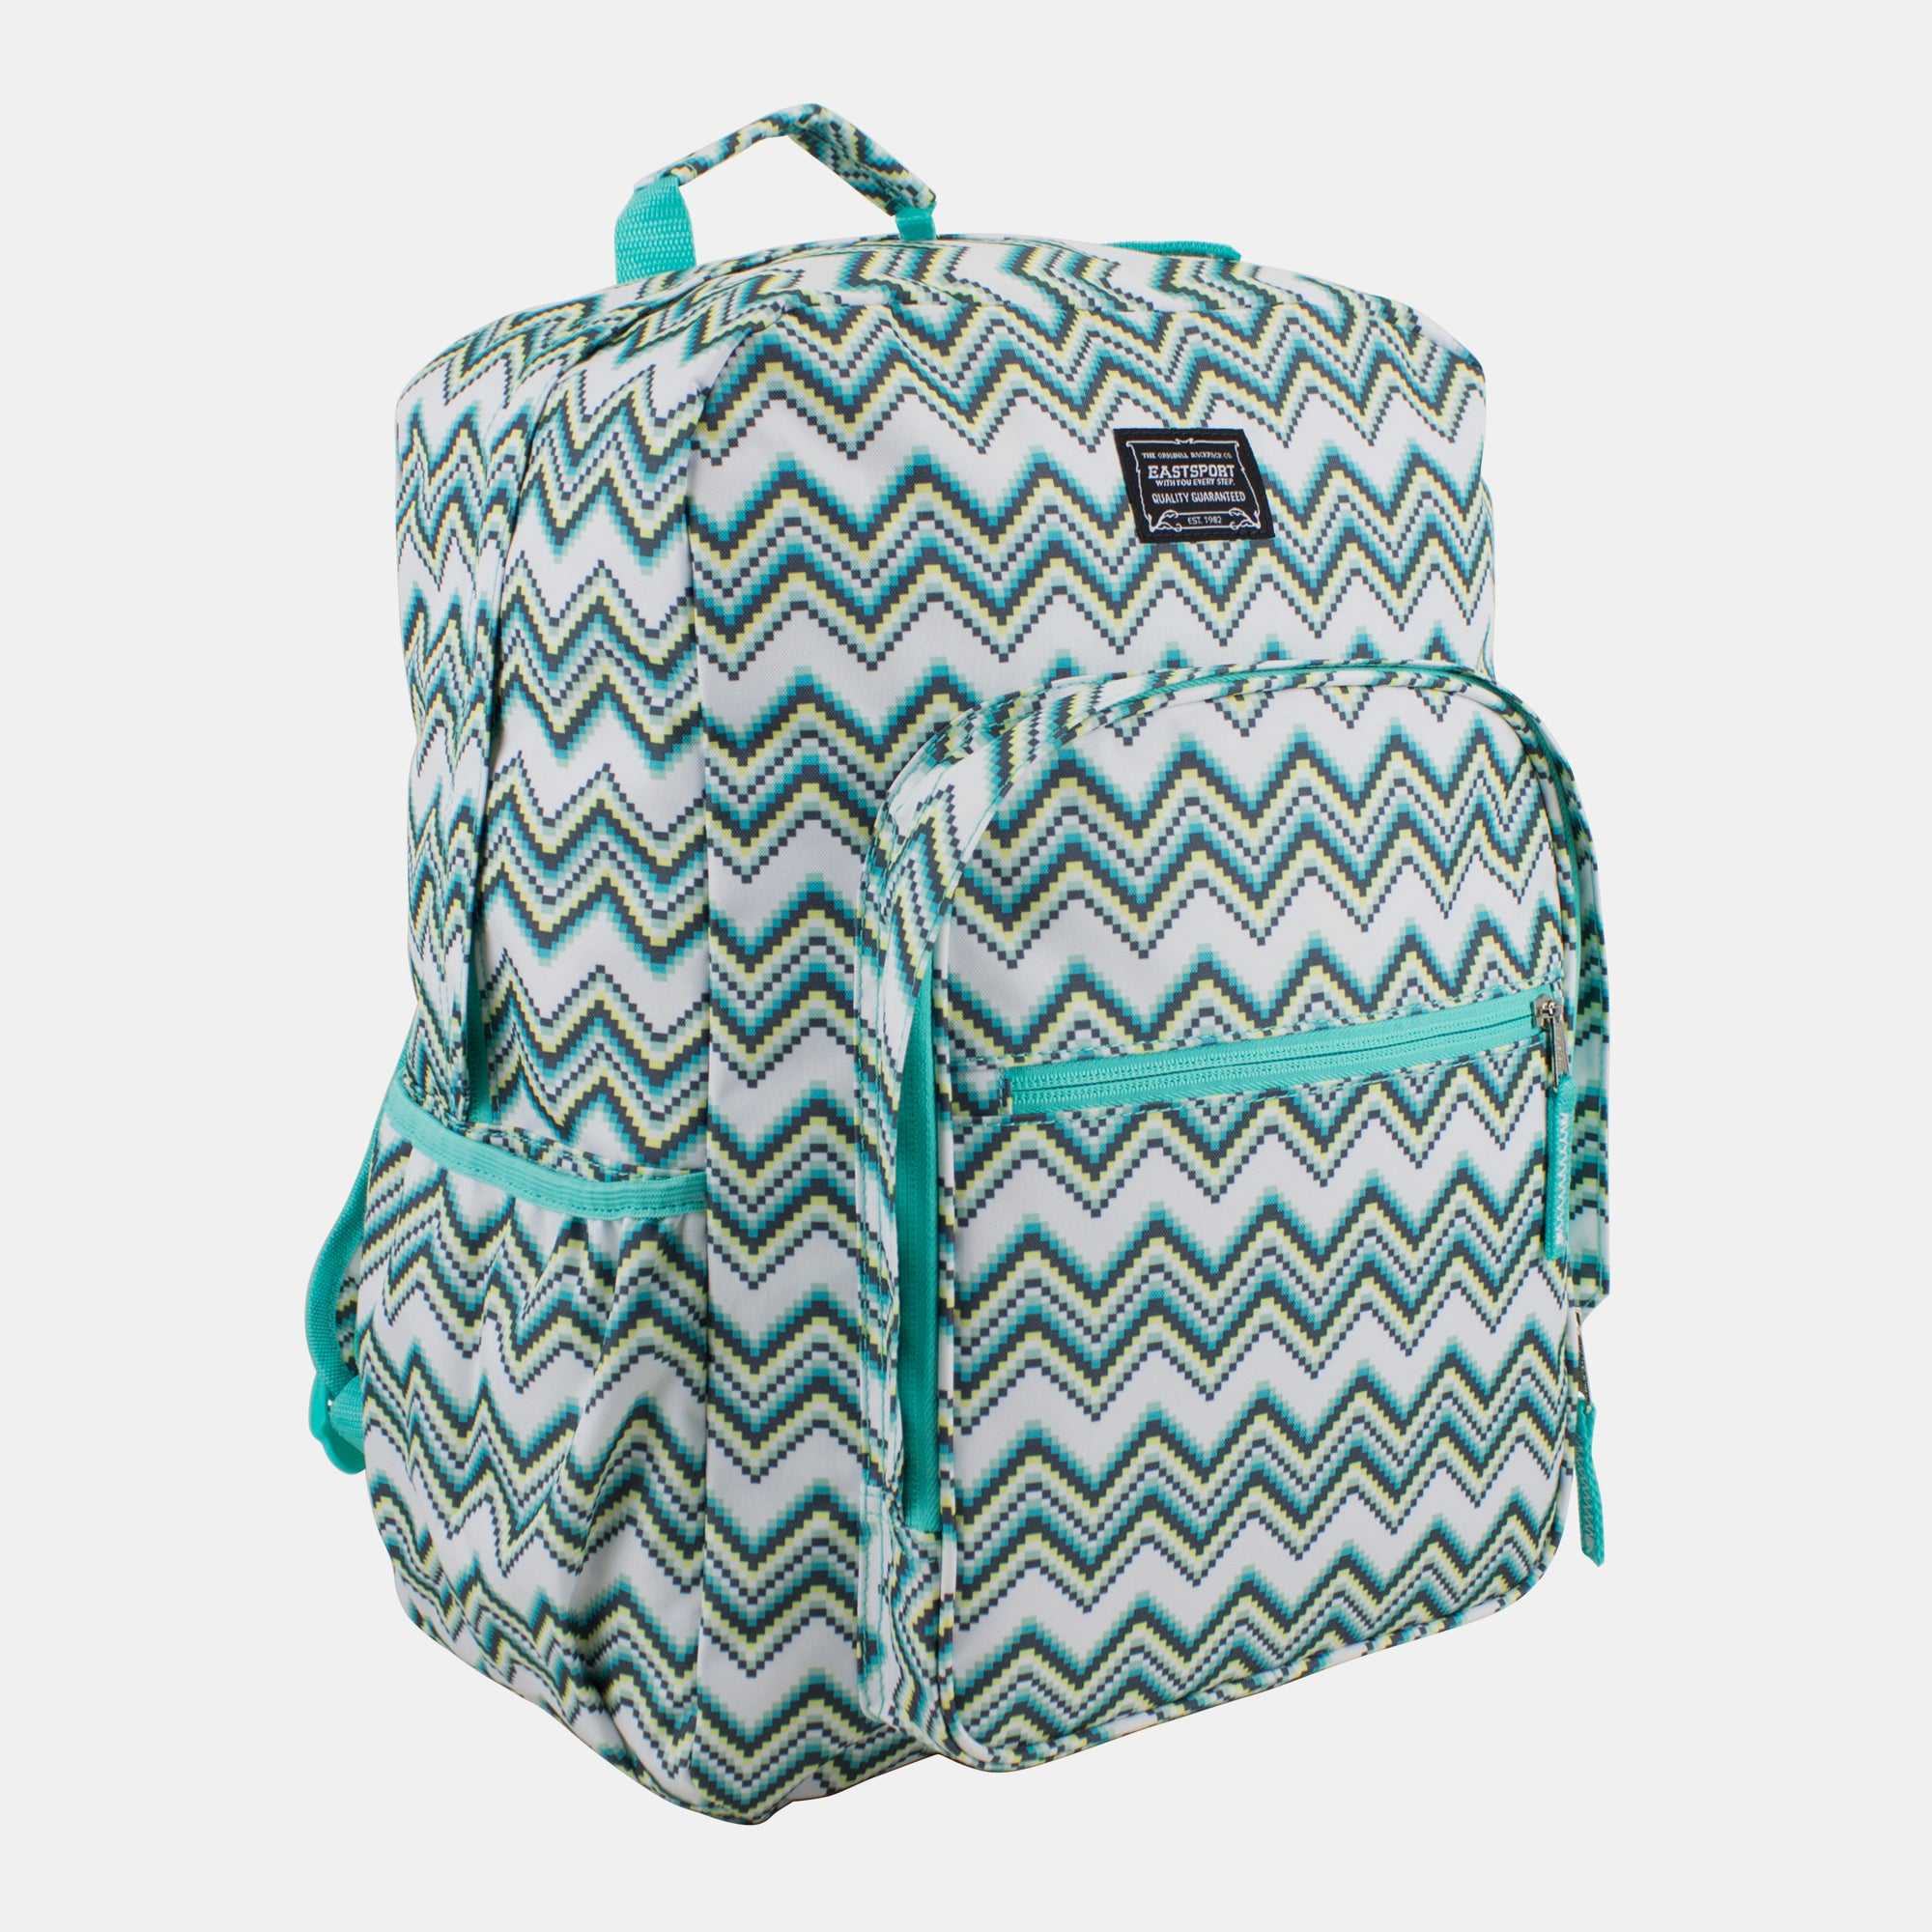 Eastsport Fashion Lifestyle Backpack with Oversized Main Compartment